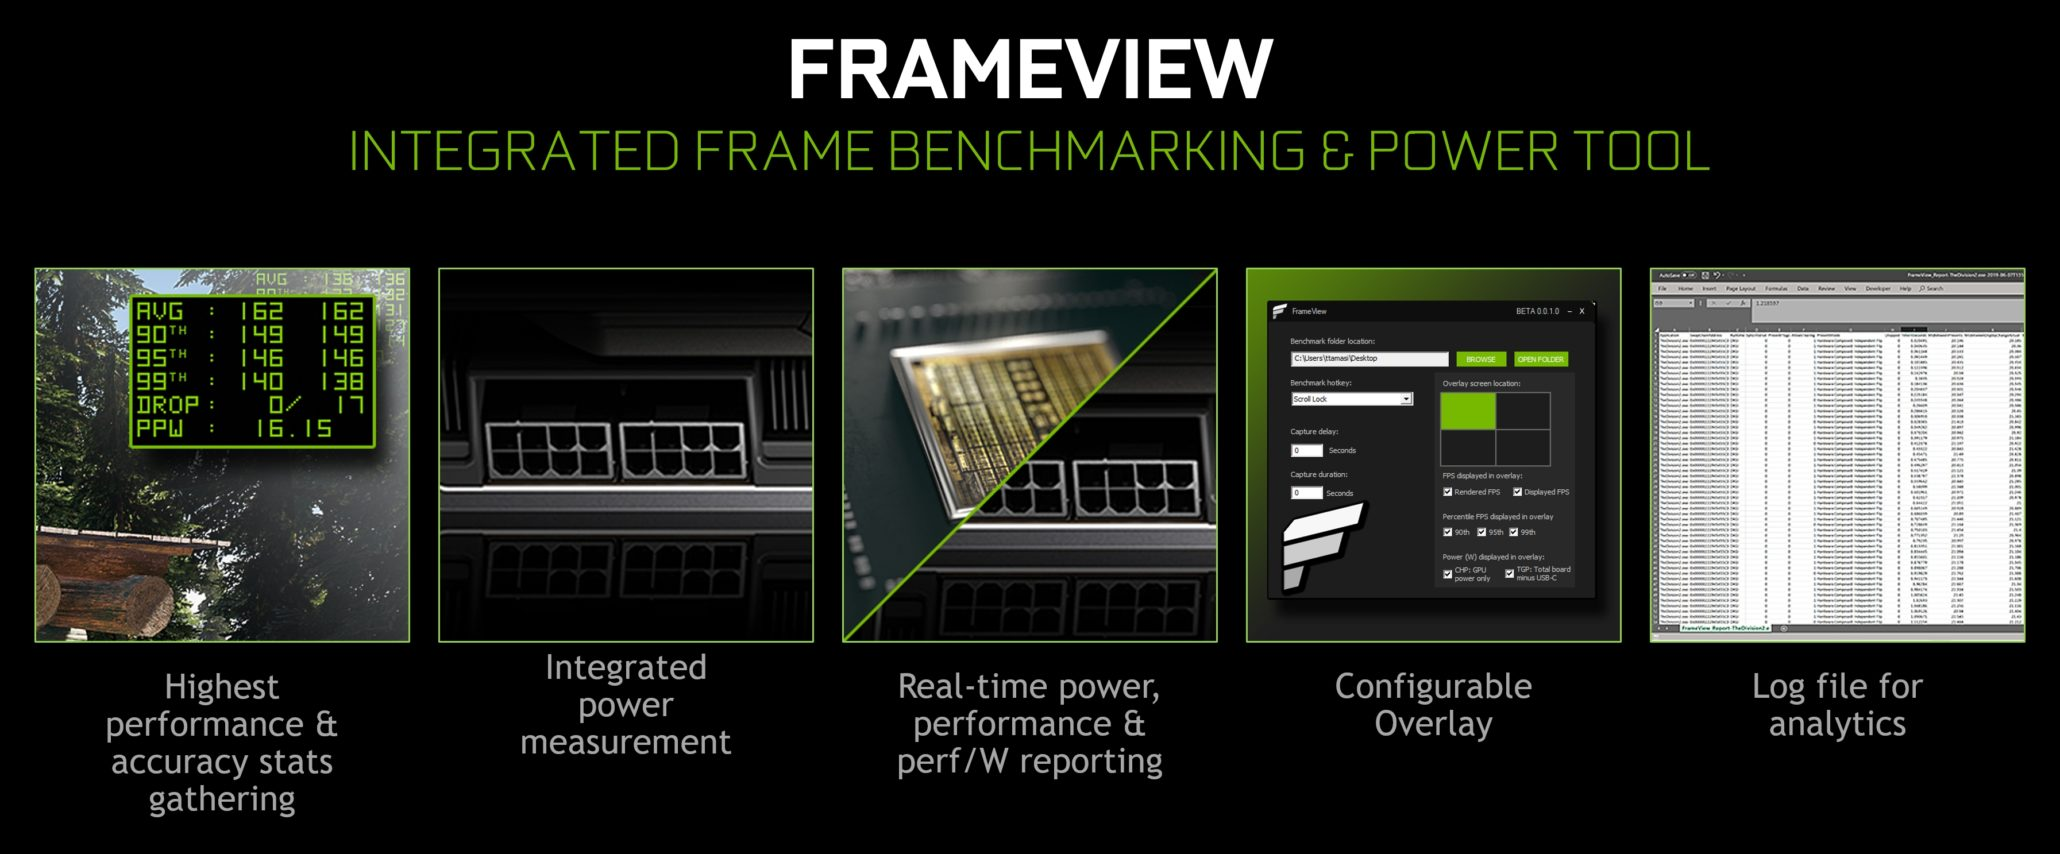 Geforce FrameView - Imagem 1 do software